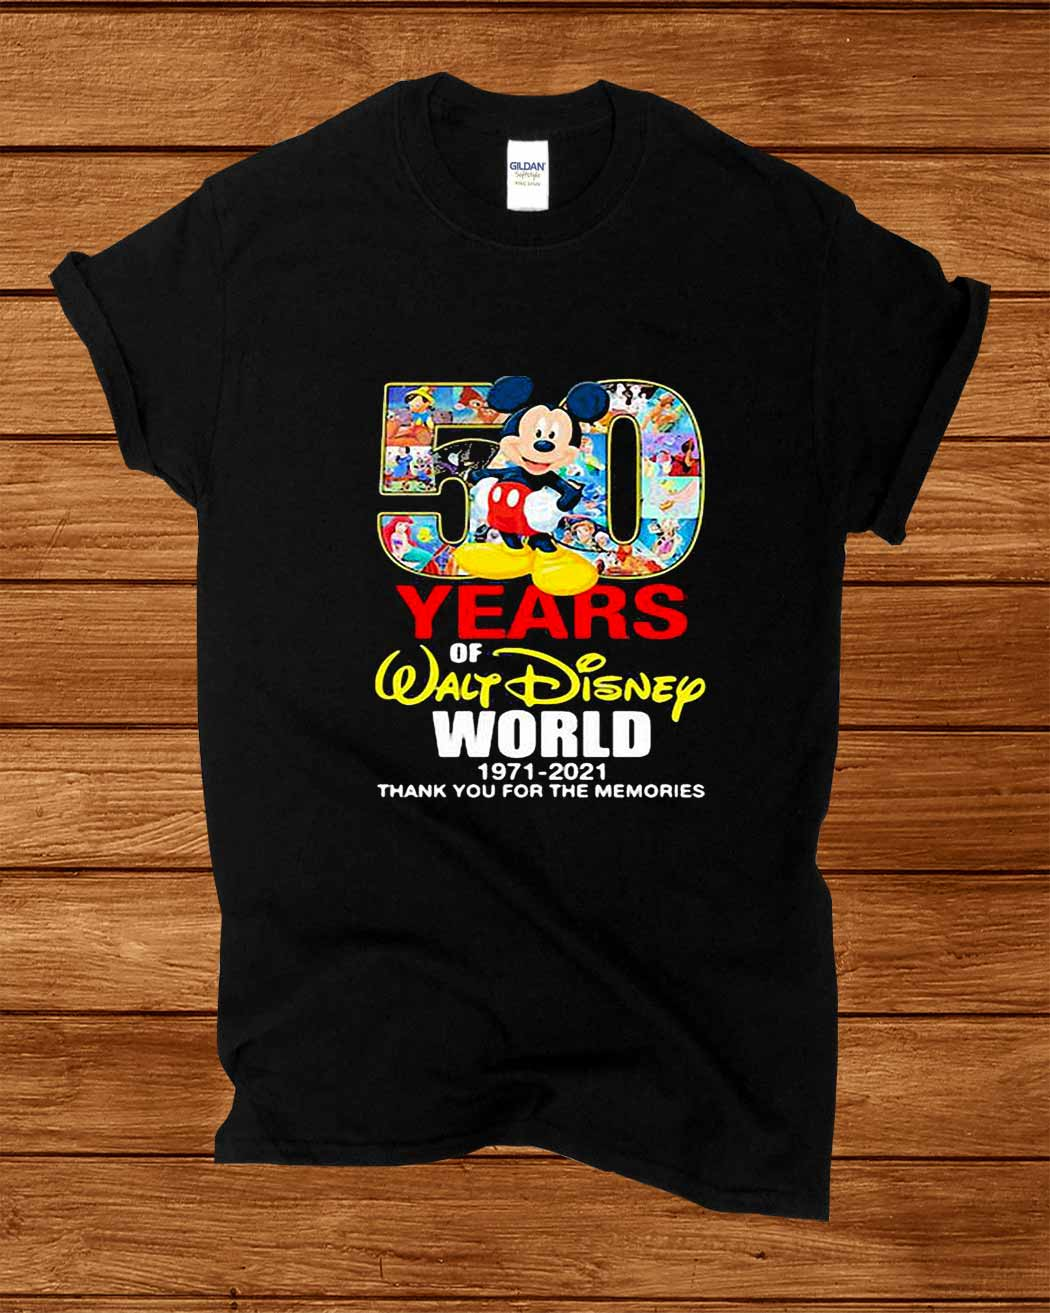 50 Years Of Walt Disney World 1971 2021 Thank You For The Memories Shirt